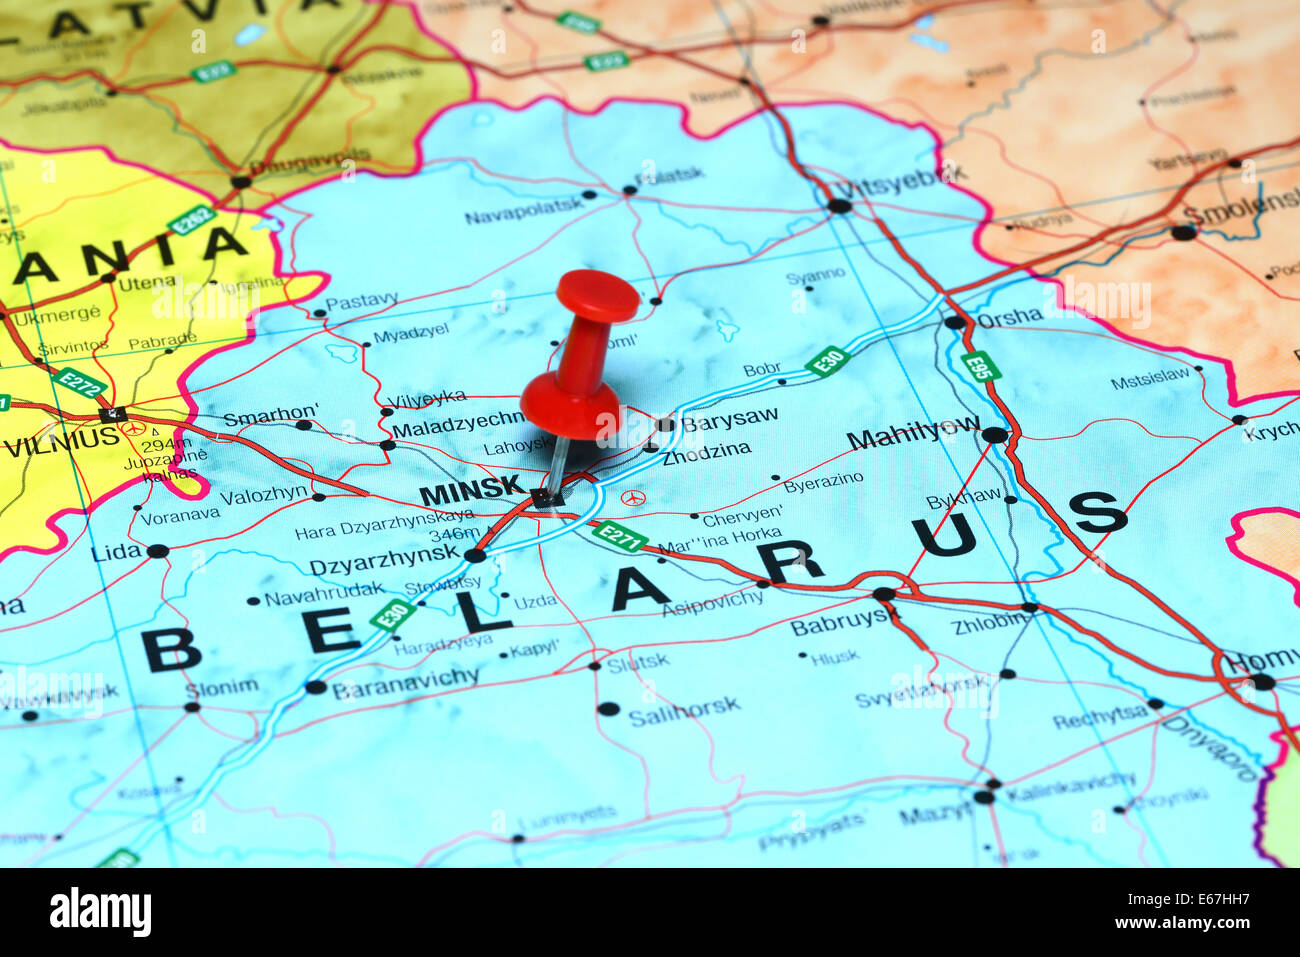 Minsk Pinned On A Map Of Europe Stock Photo Royalty Free Image - minsk map